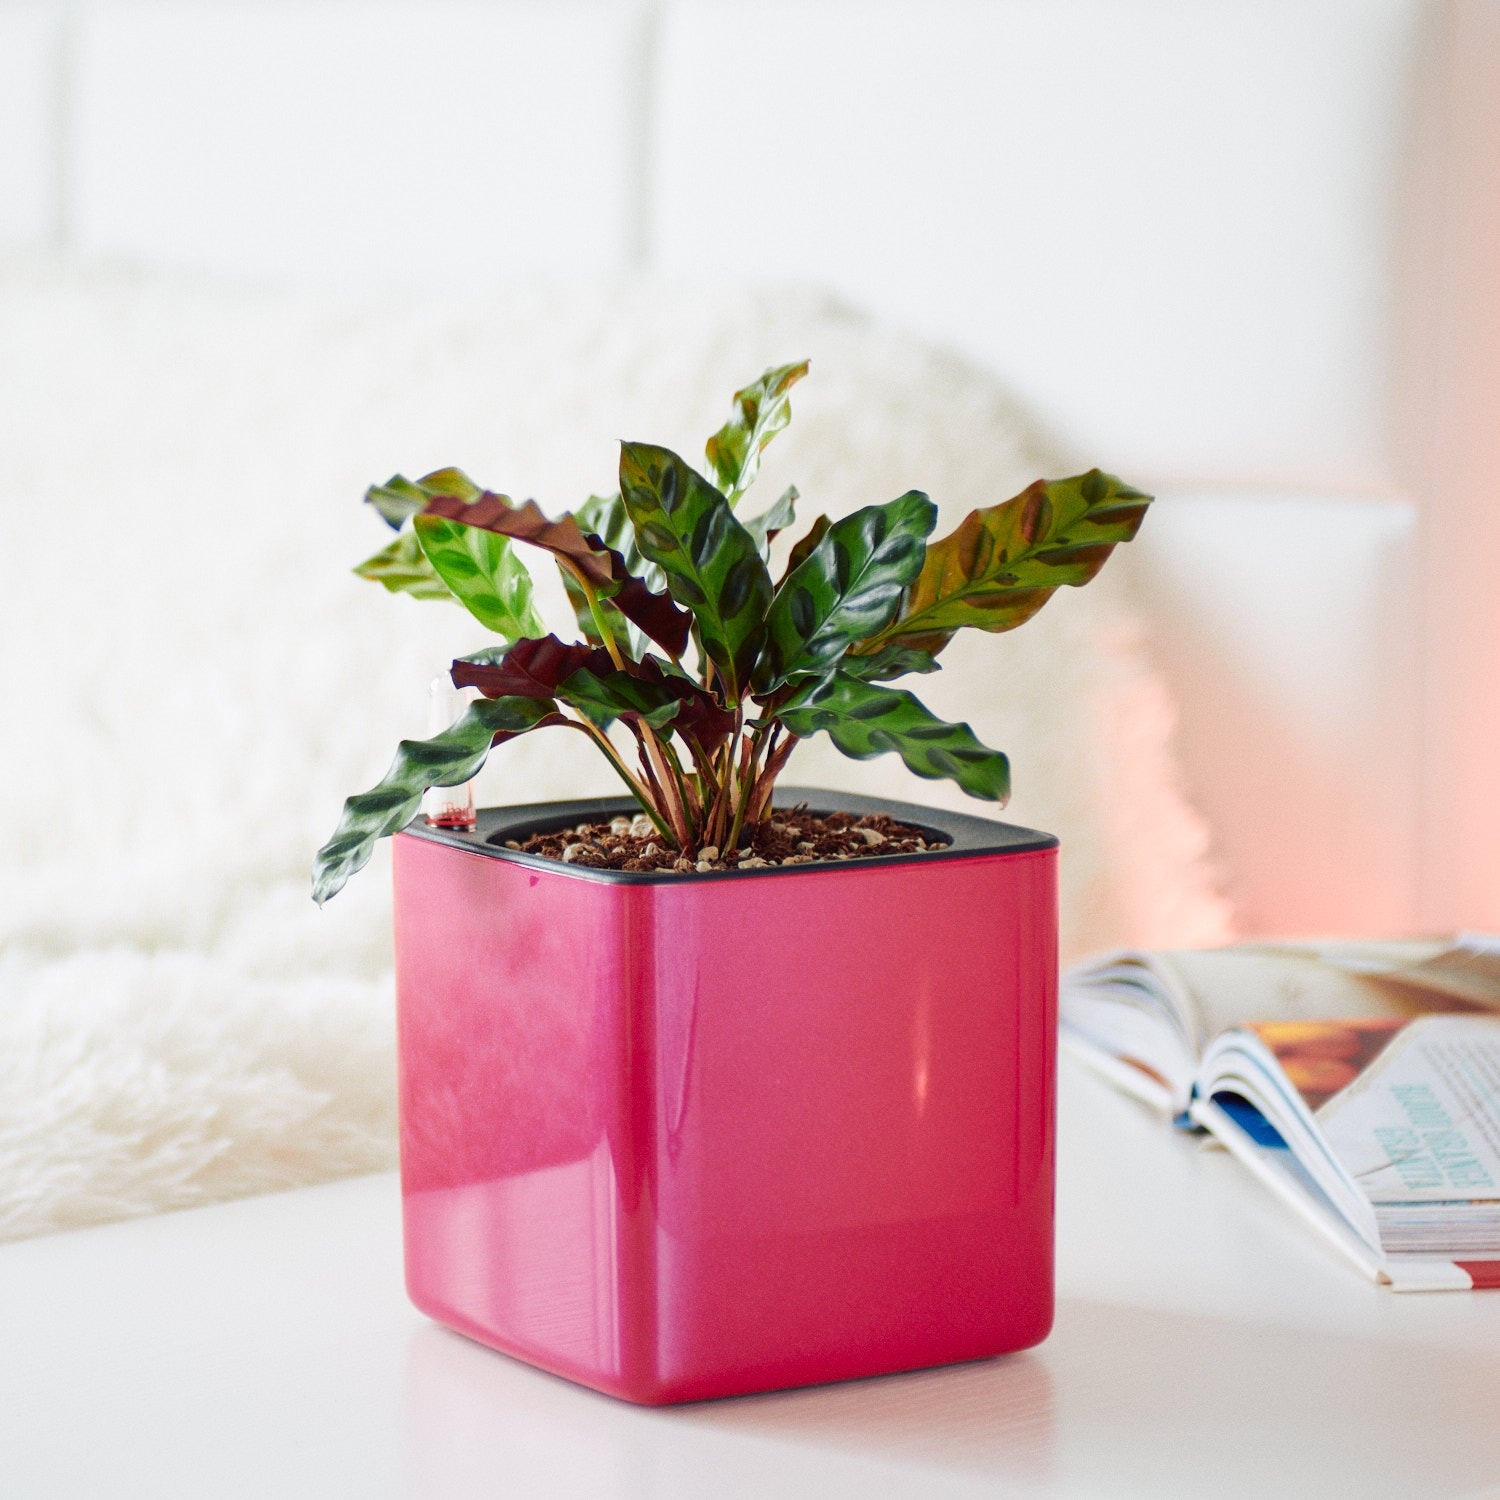 Calathea In Lechuza Cube Cherry Pie Planter | My City Plants